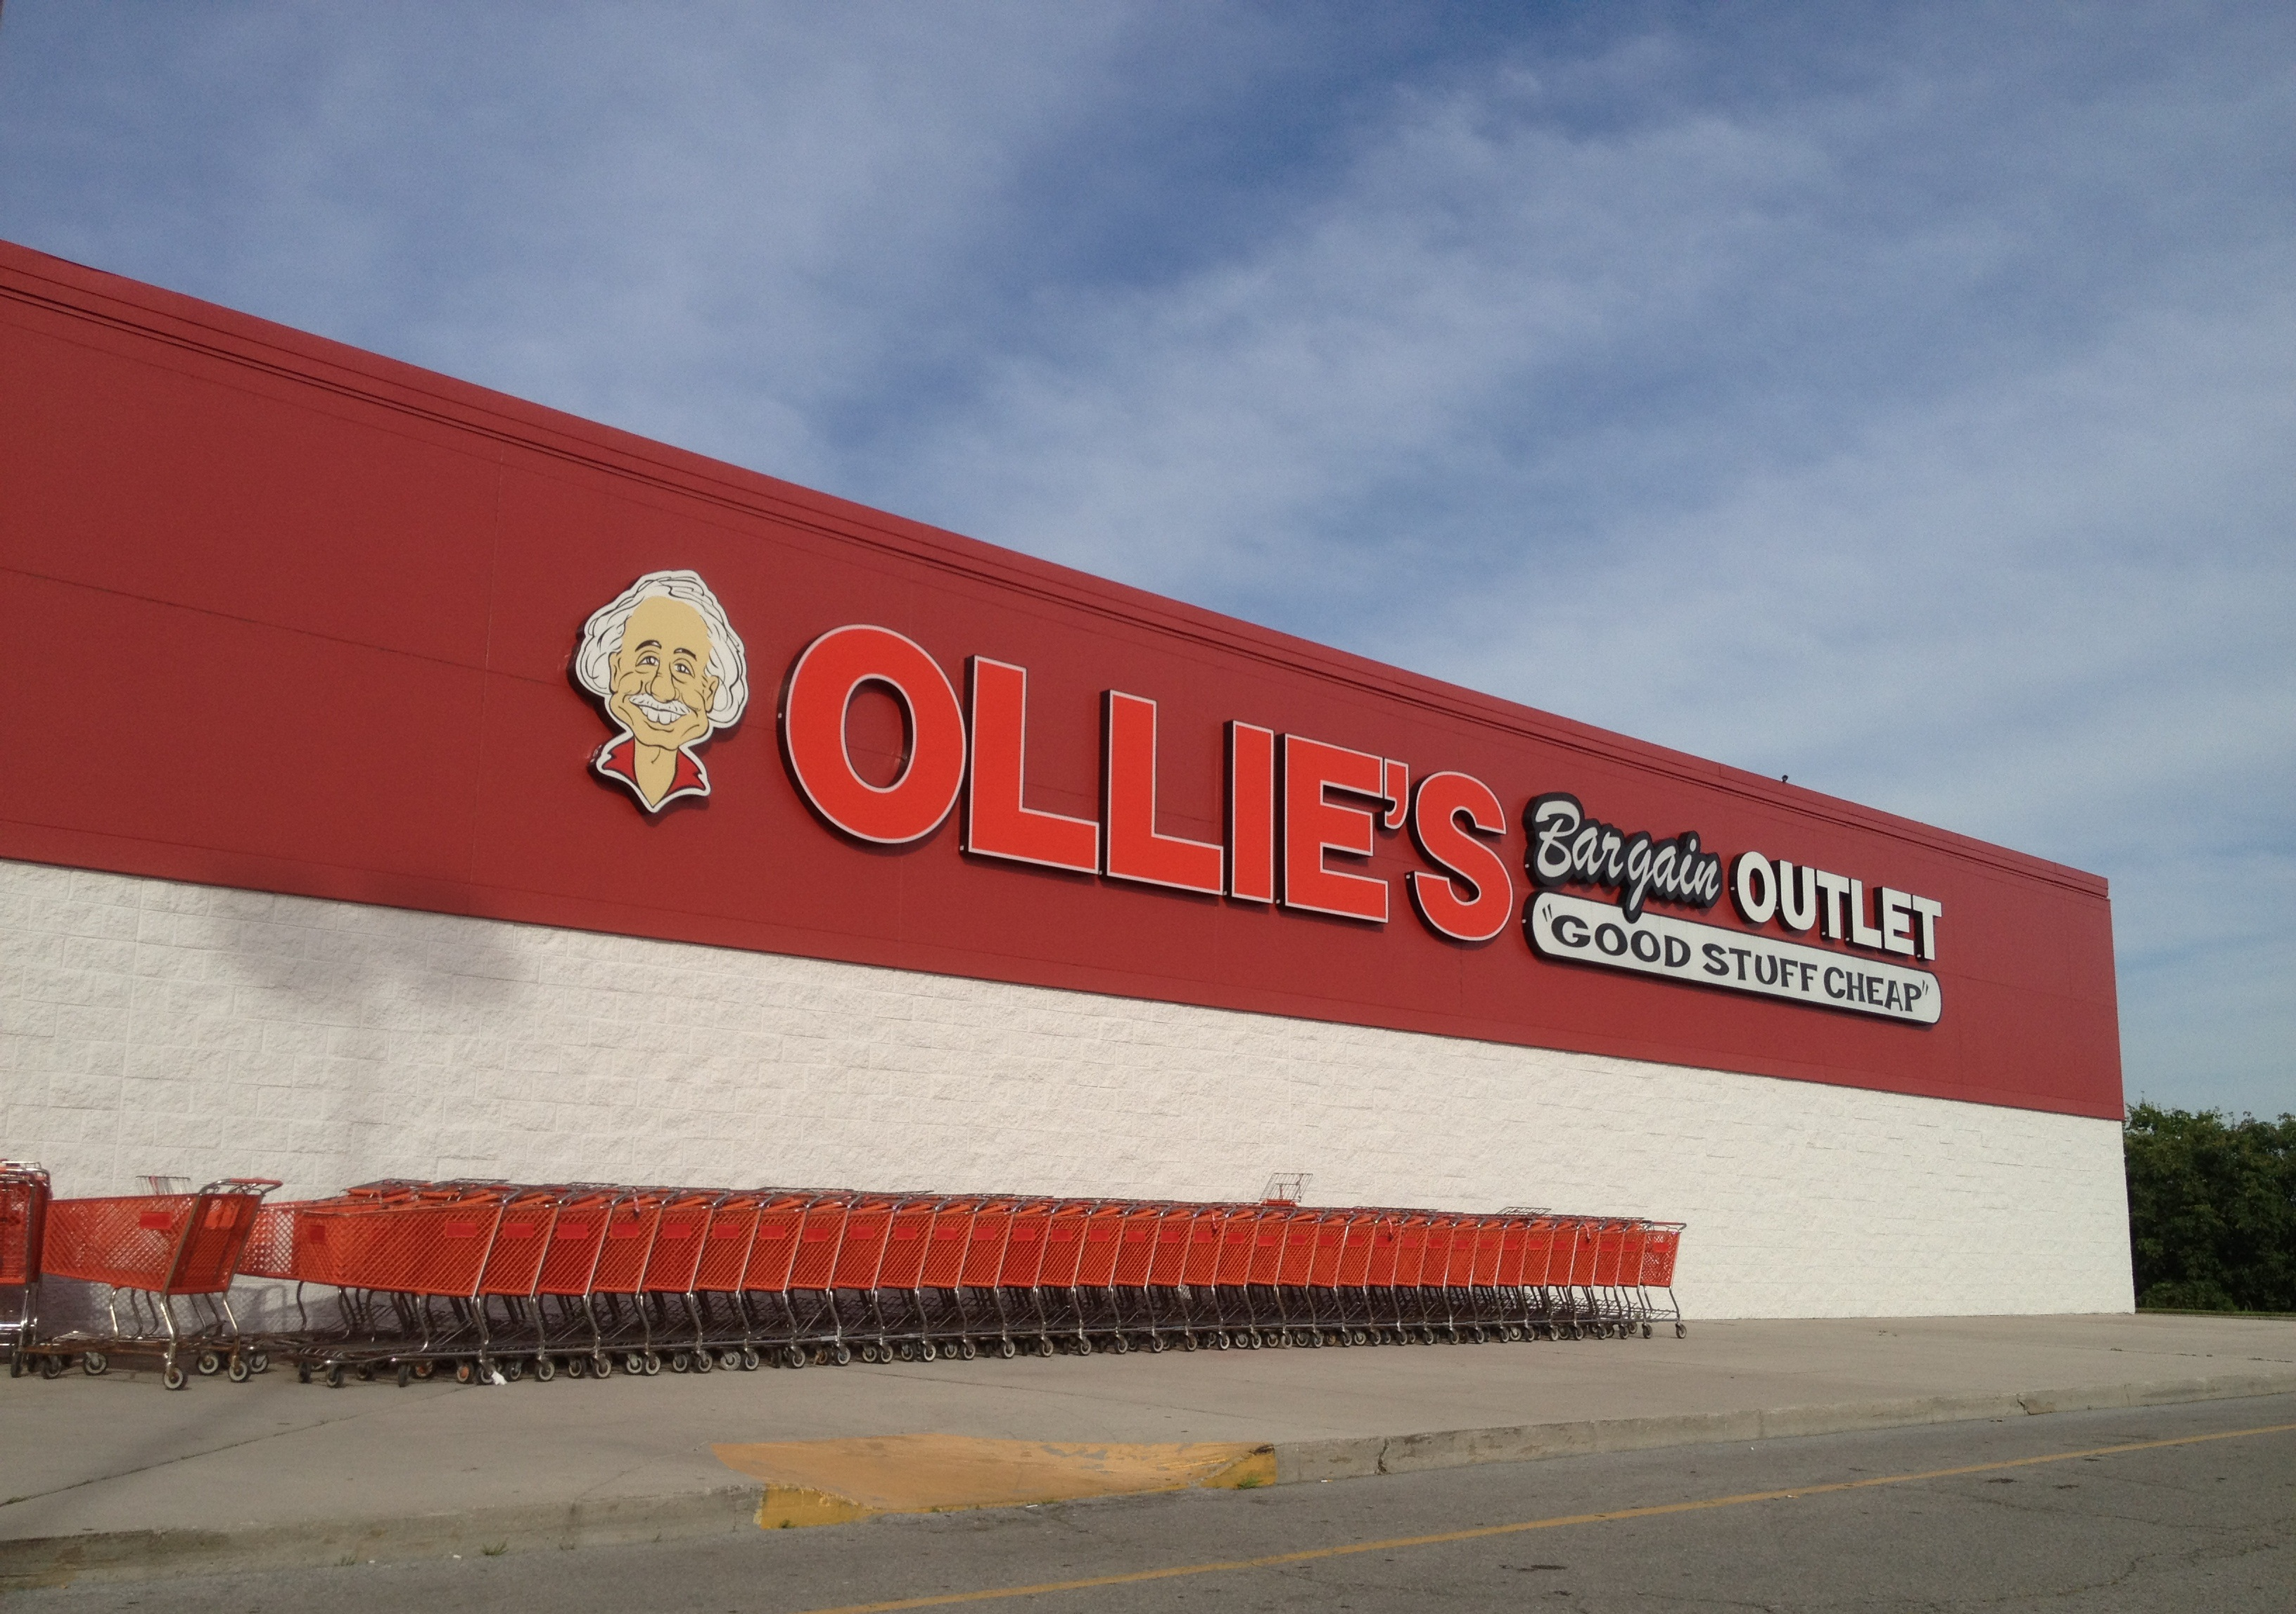 Ollies_(Former_Circuit_City)_Knoxville_Center_Knoxville,_TN_(7247025306)